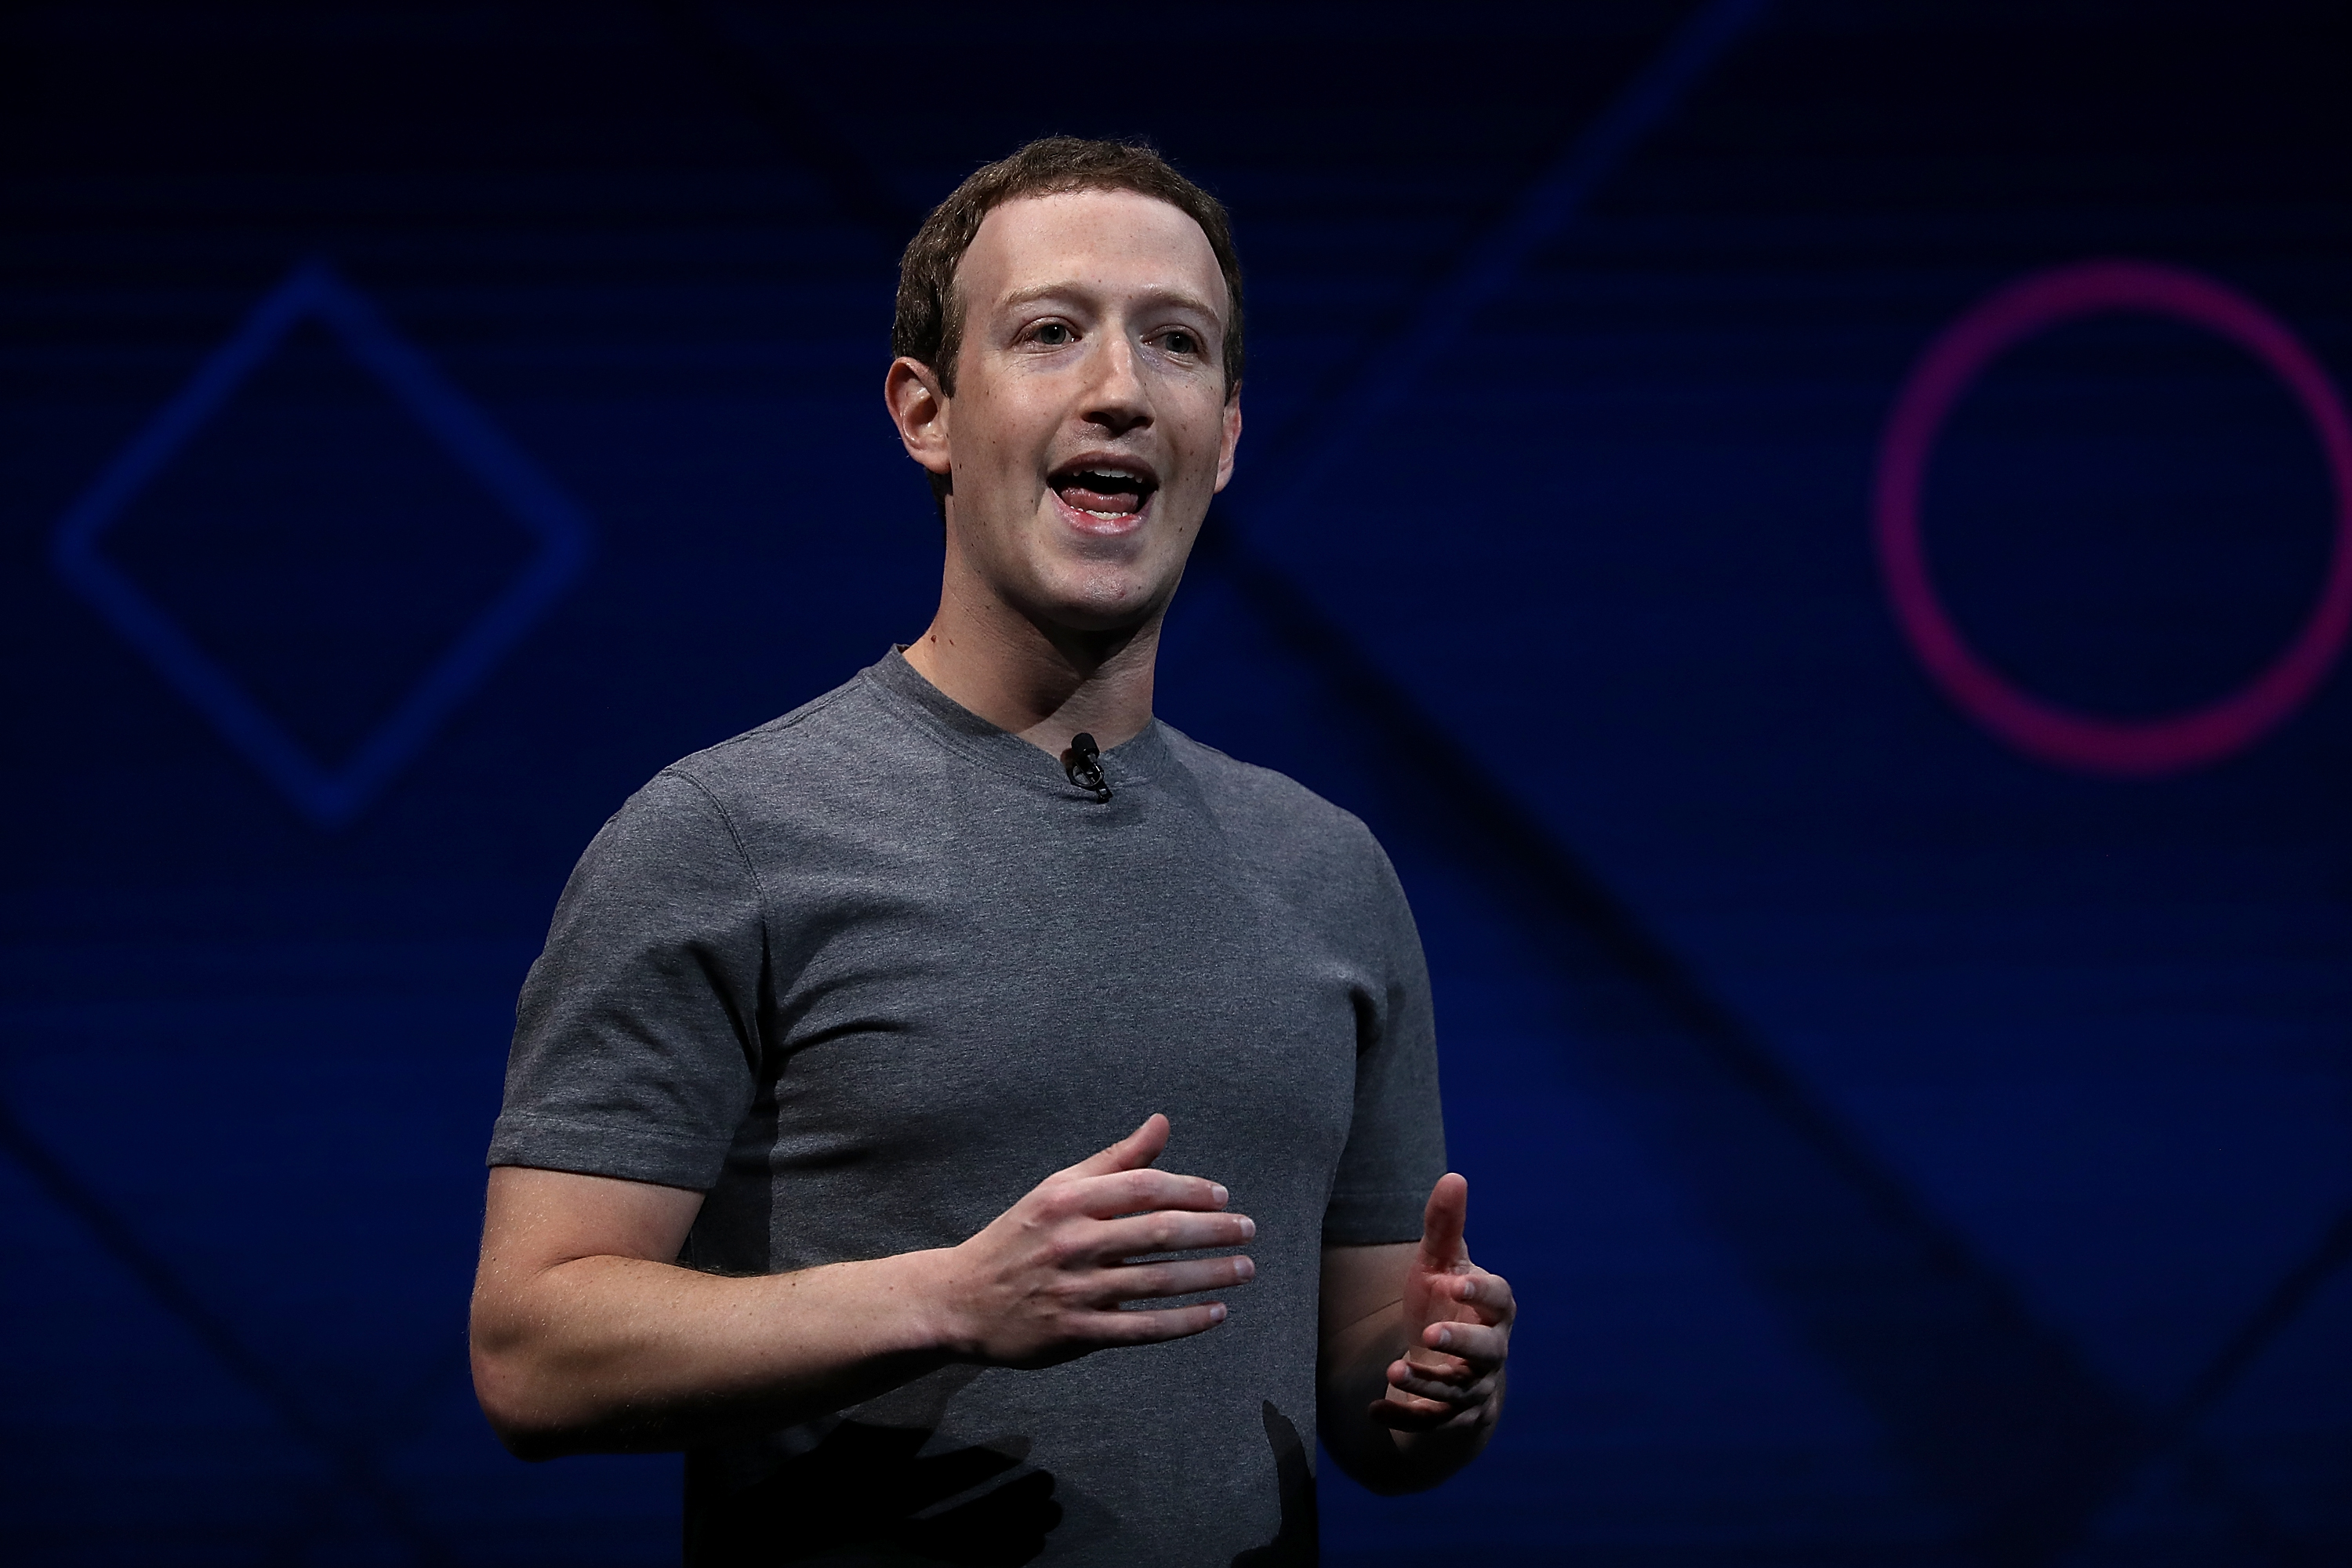 Facebook reportedly wants to spend a 'few billion dollars' for streaming sports rights